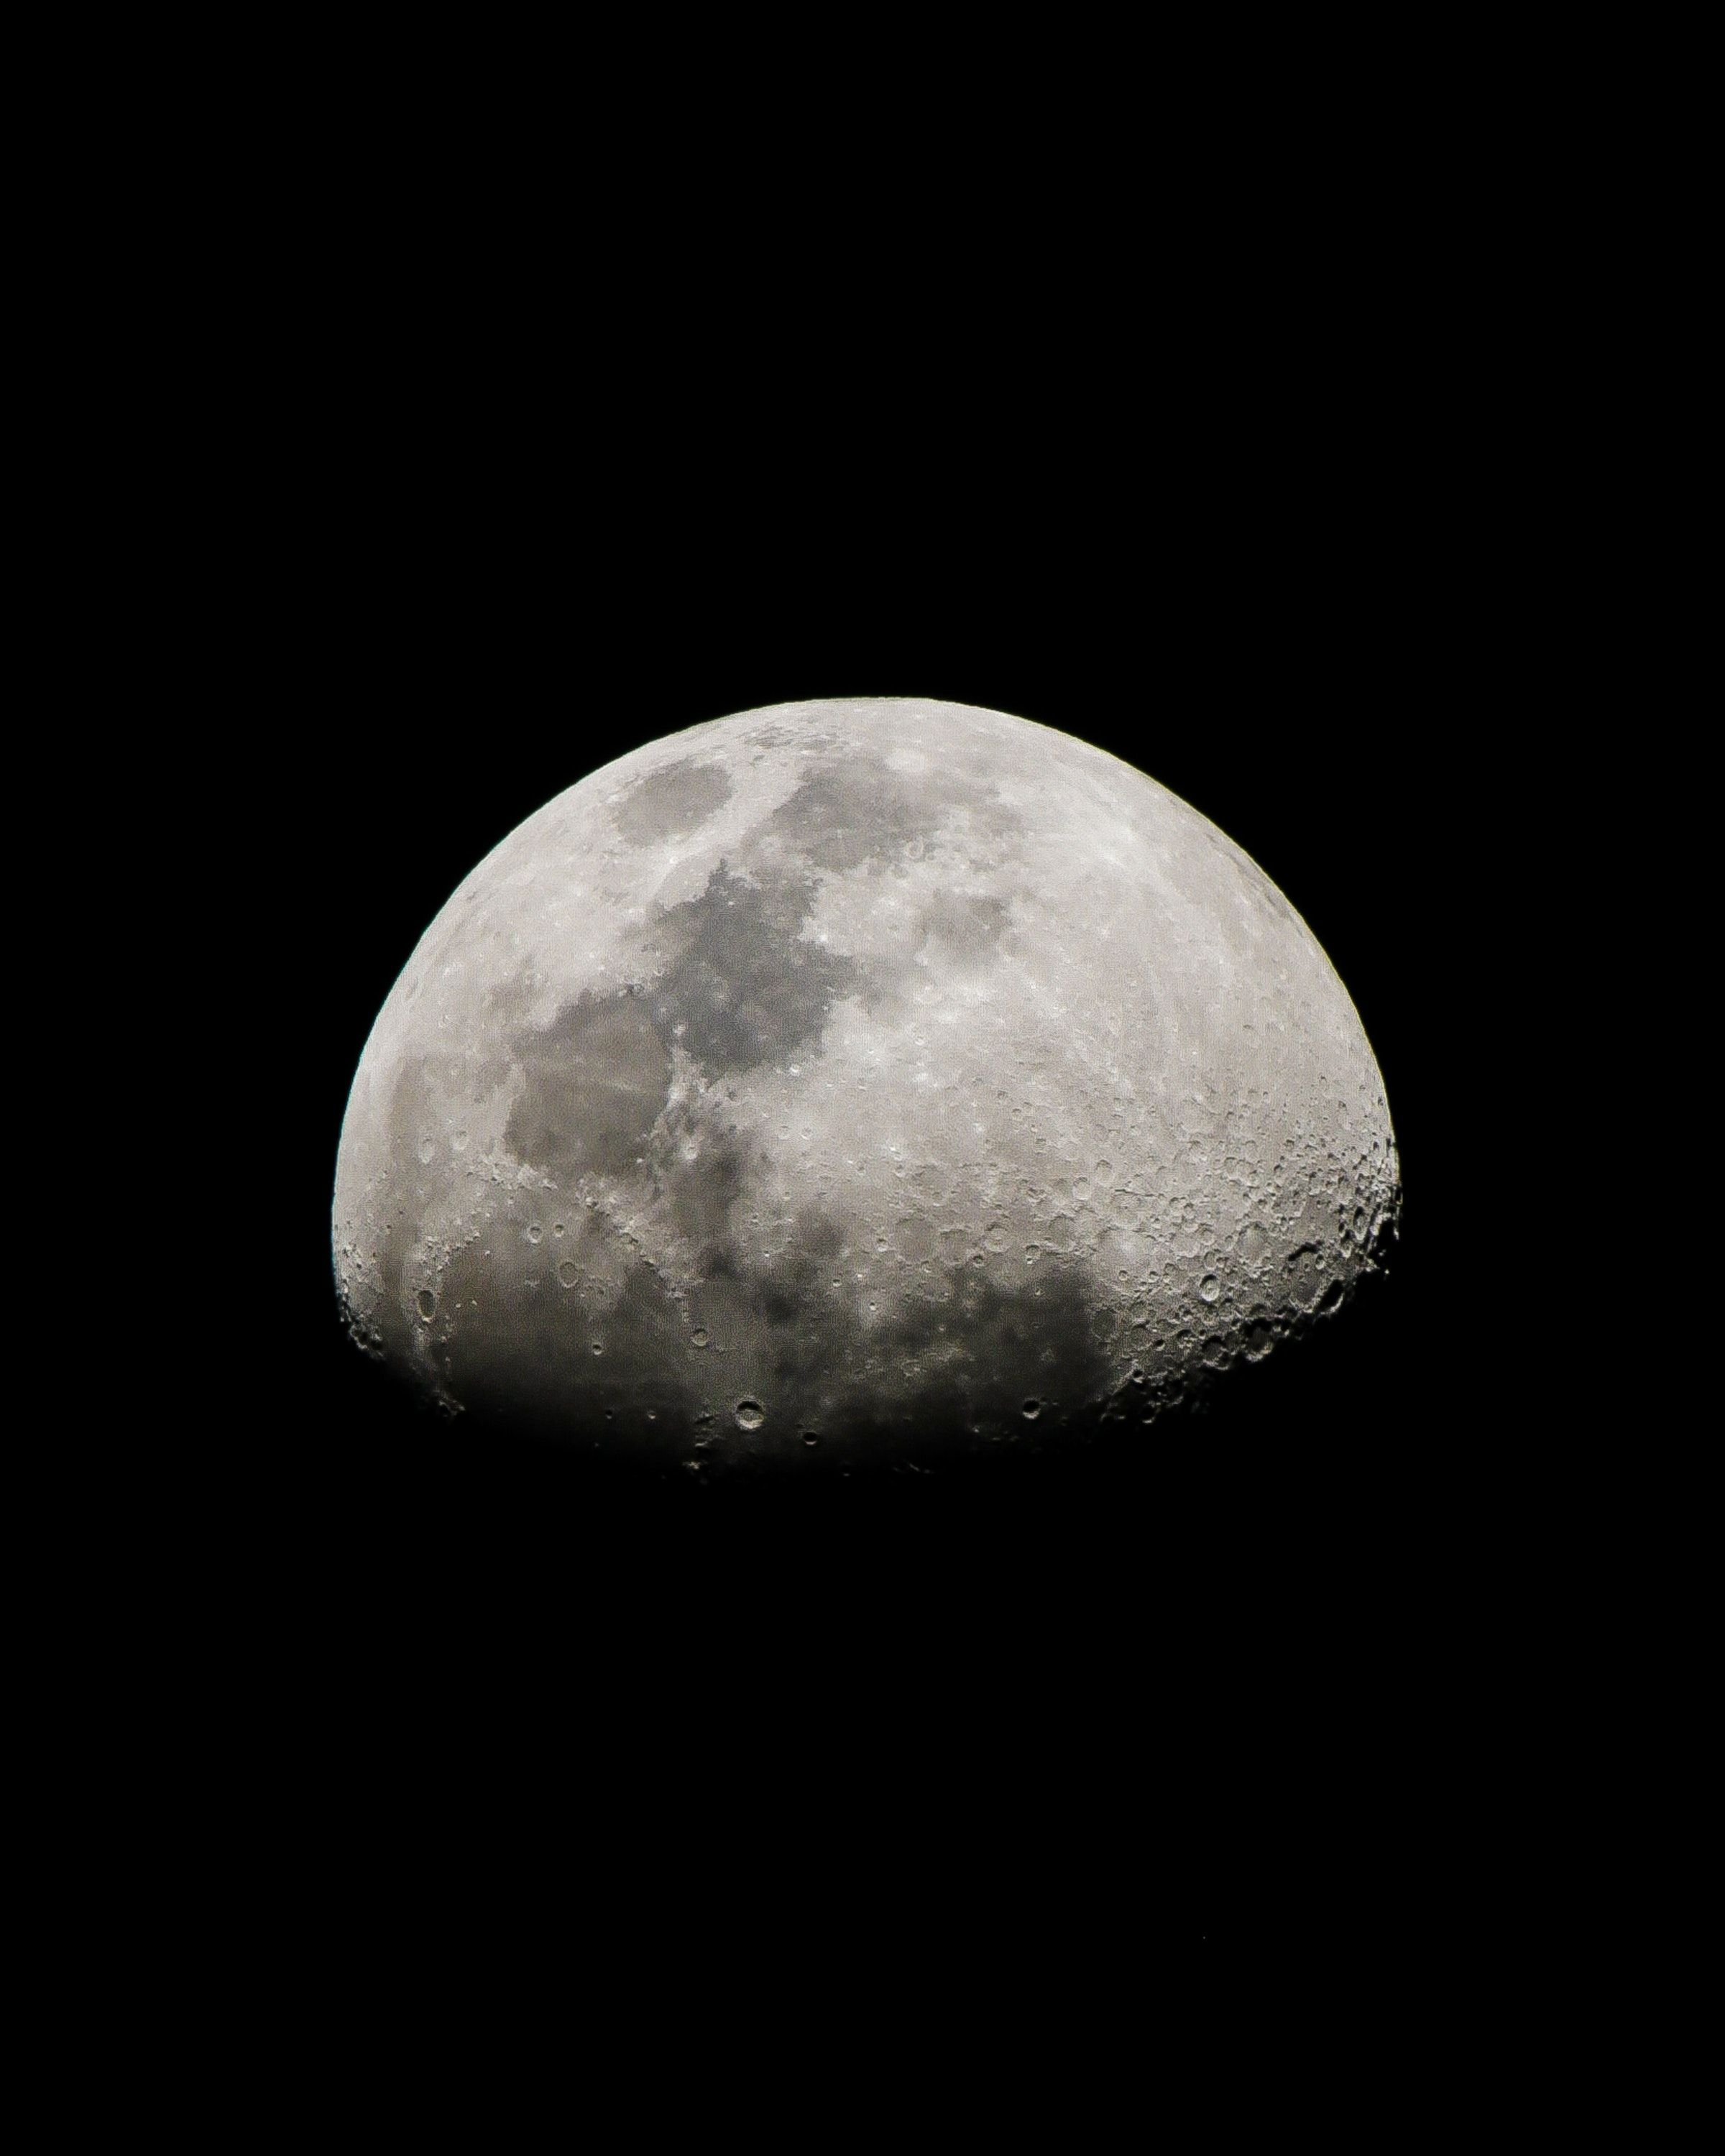 Space moon, sky, crater, night, dark android wallpapers